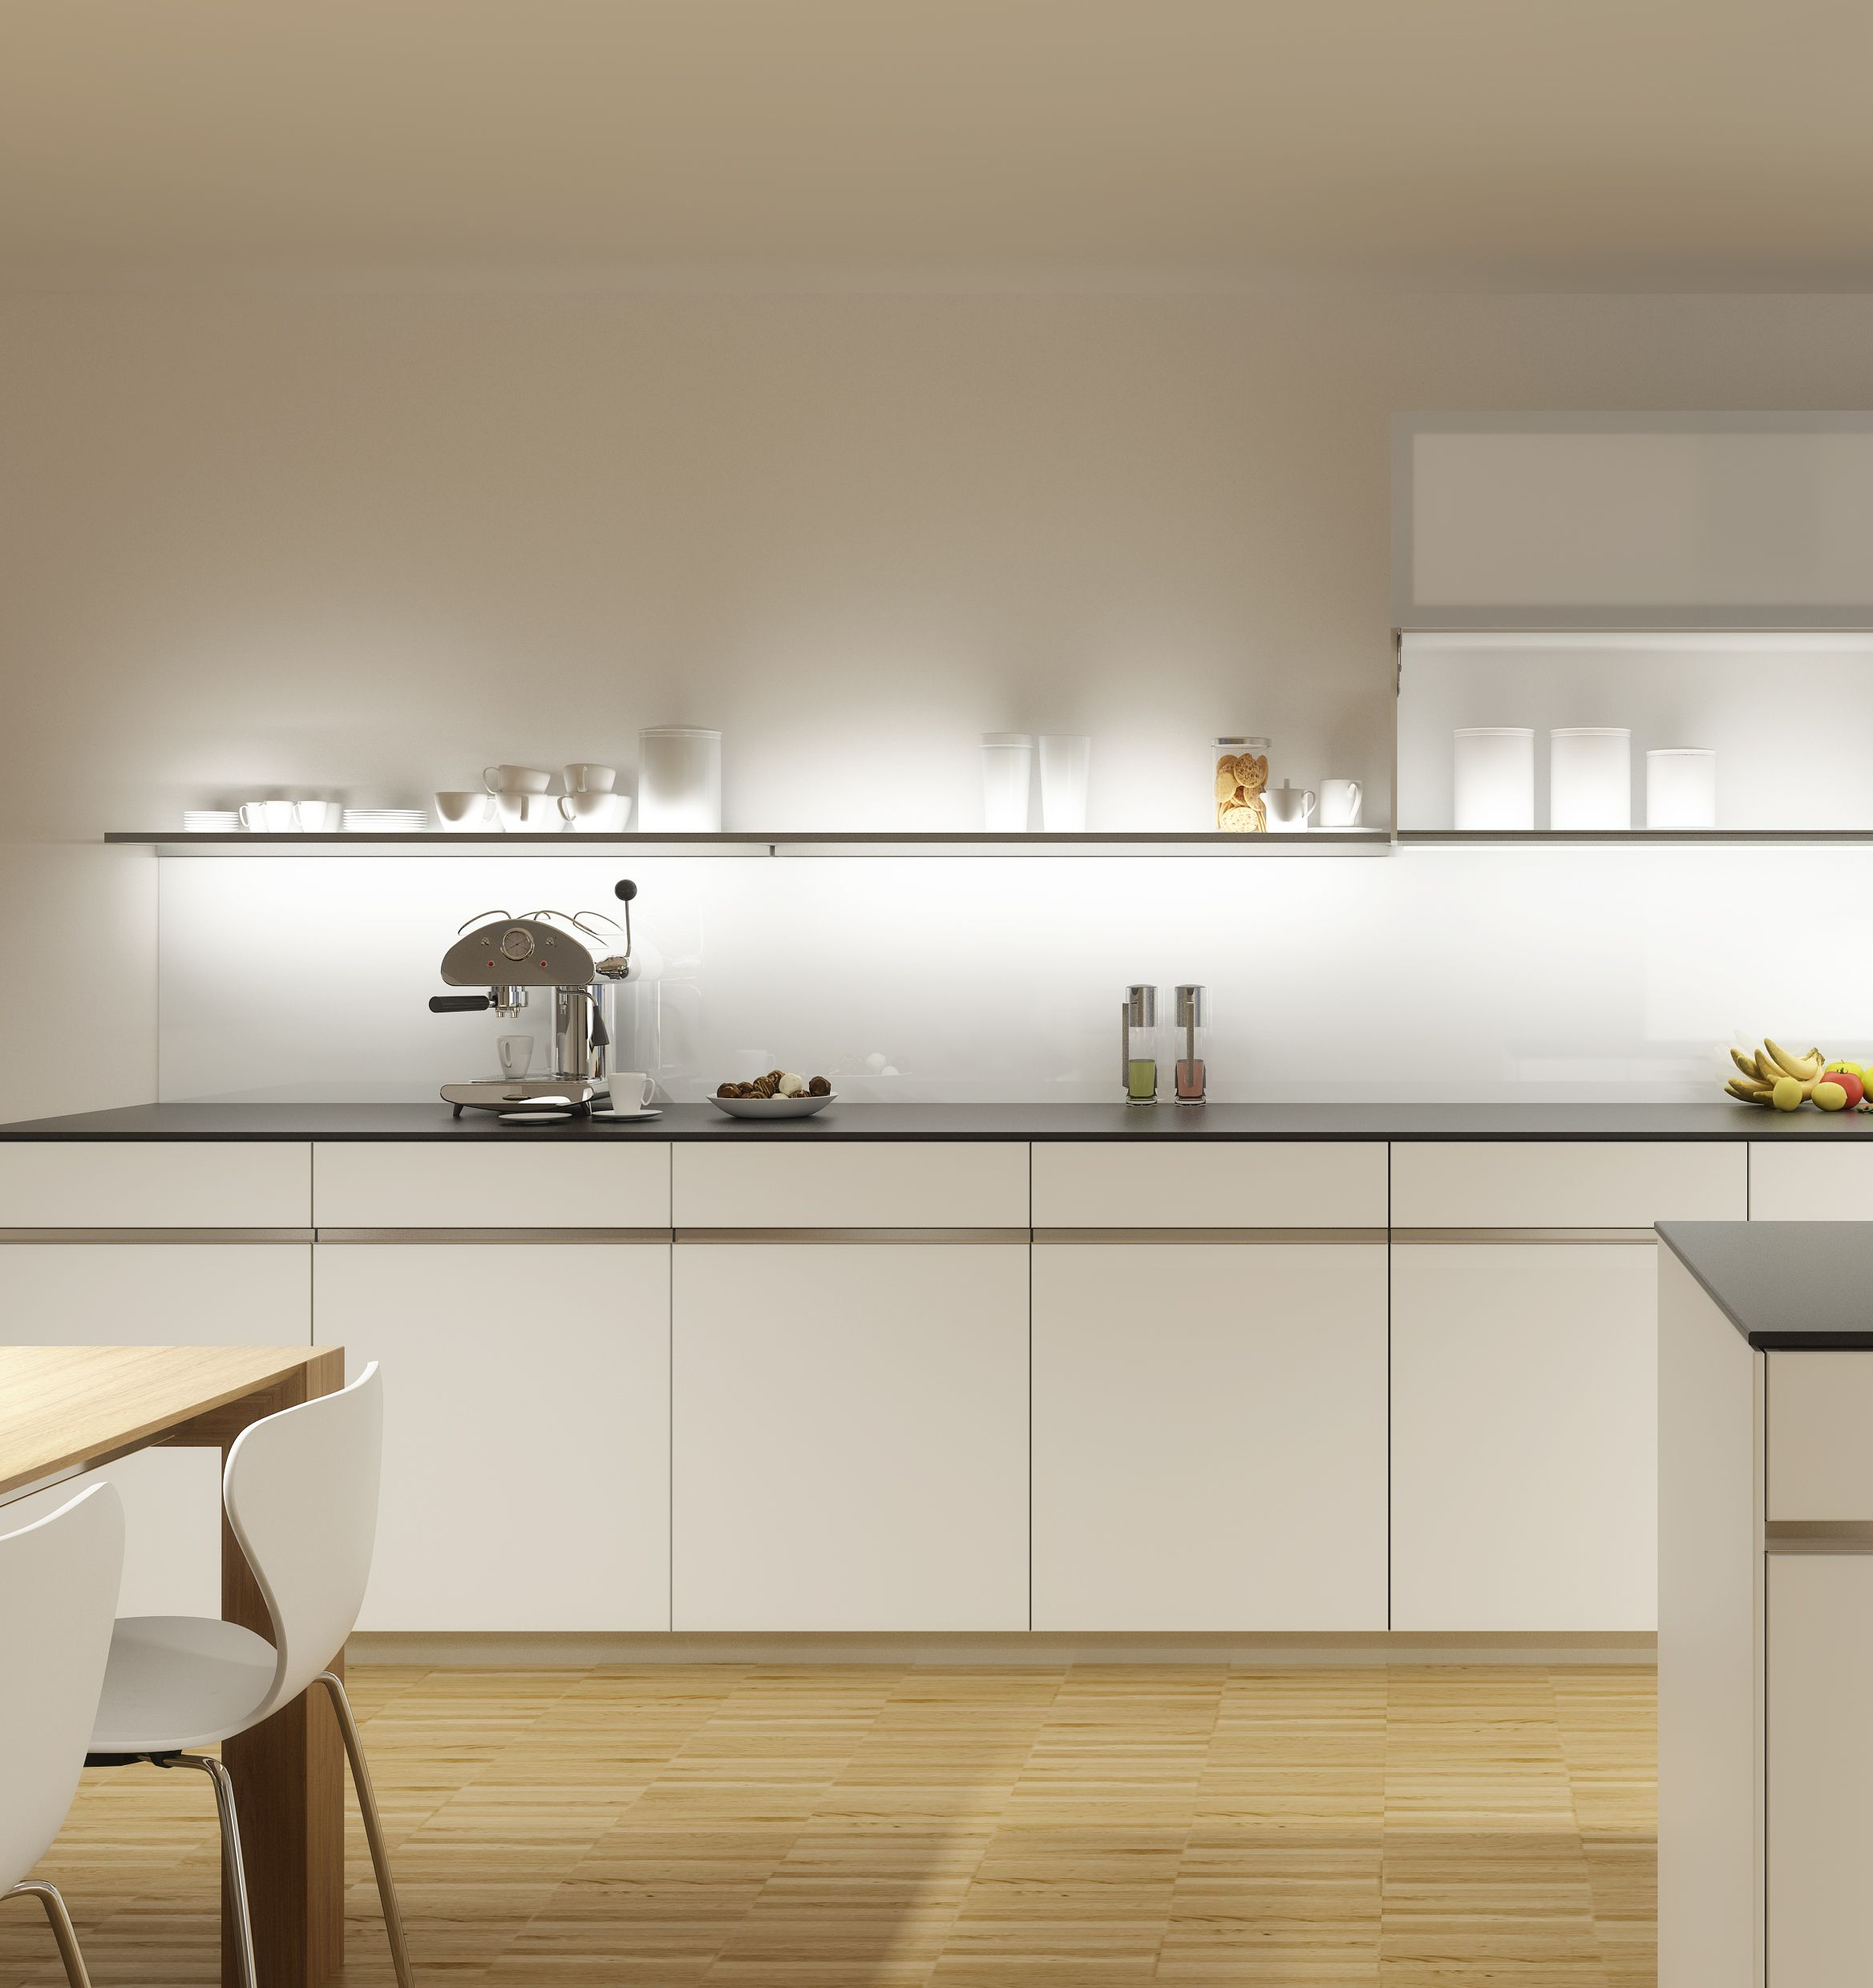 Küchen Ohne Hochschränke Bildergebnis Für Küchen Ohne Oberschränke | Minimalist Kitchen Design, Kitchen Without Wall Cabinets, Kitchen Design